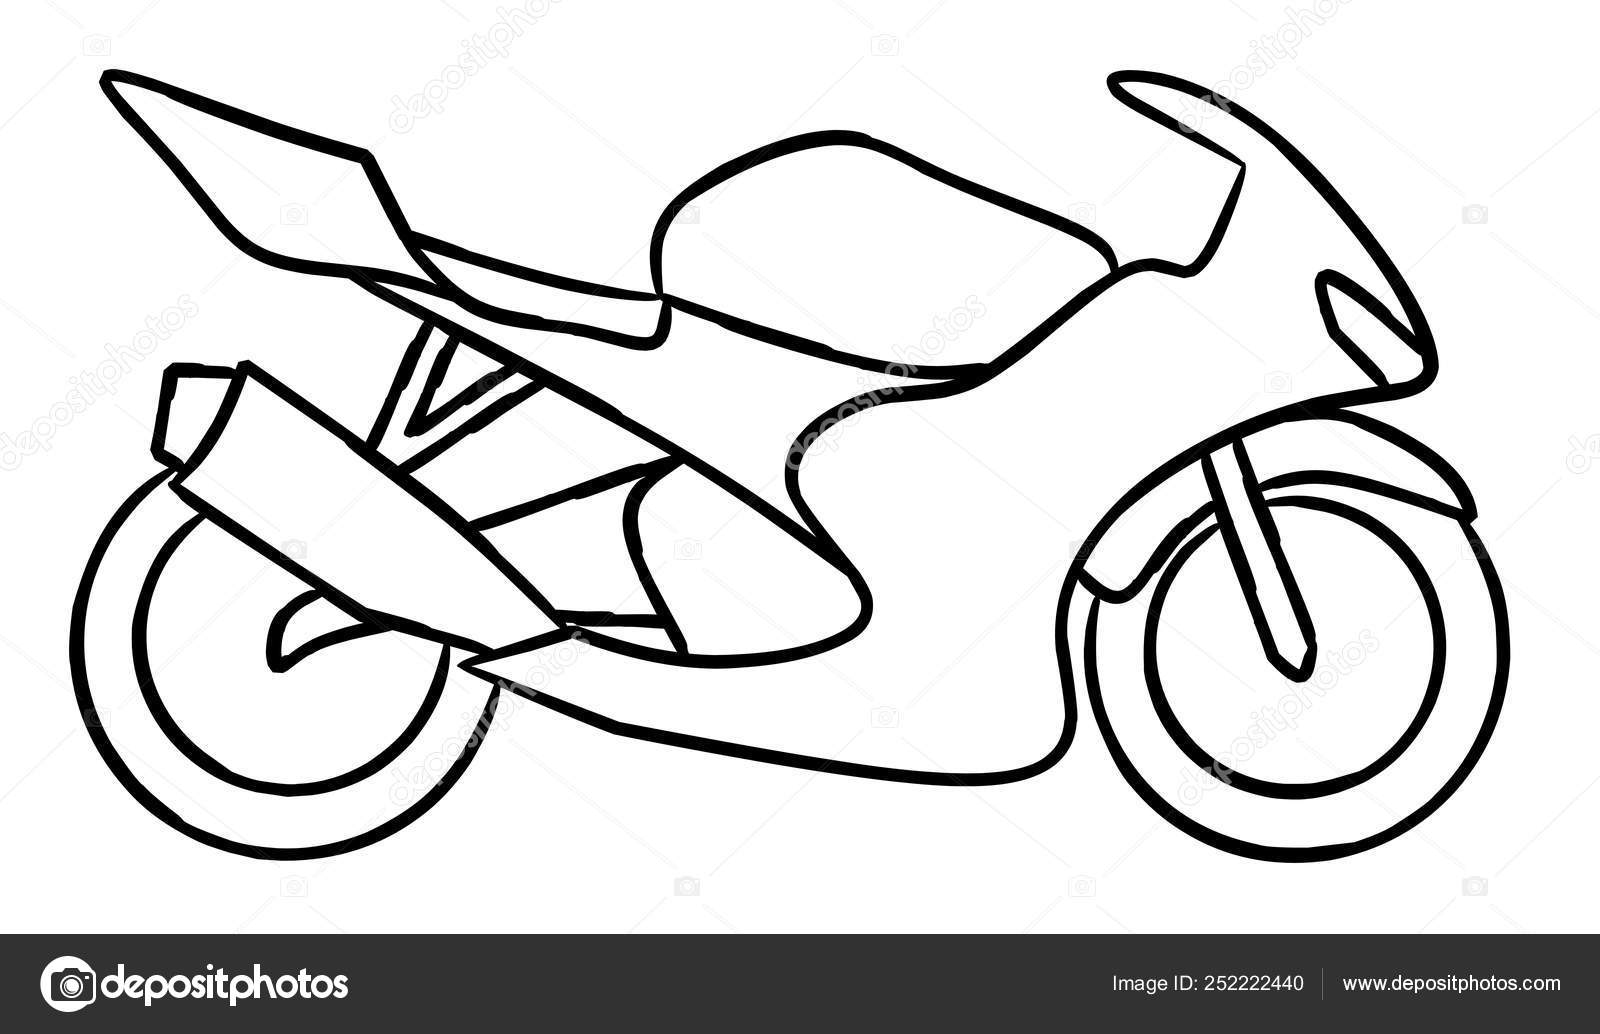 Hand Draw Style Ofa New Motorcycle Illustration Coloring Book Race Stock Photo C Dennyranch Gmail Com 252222440